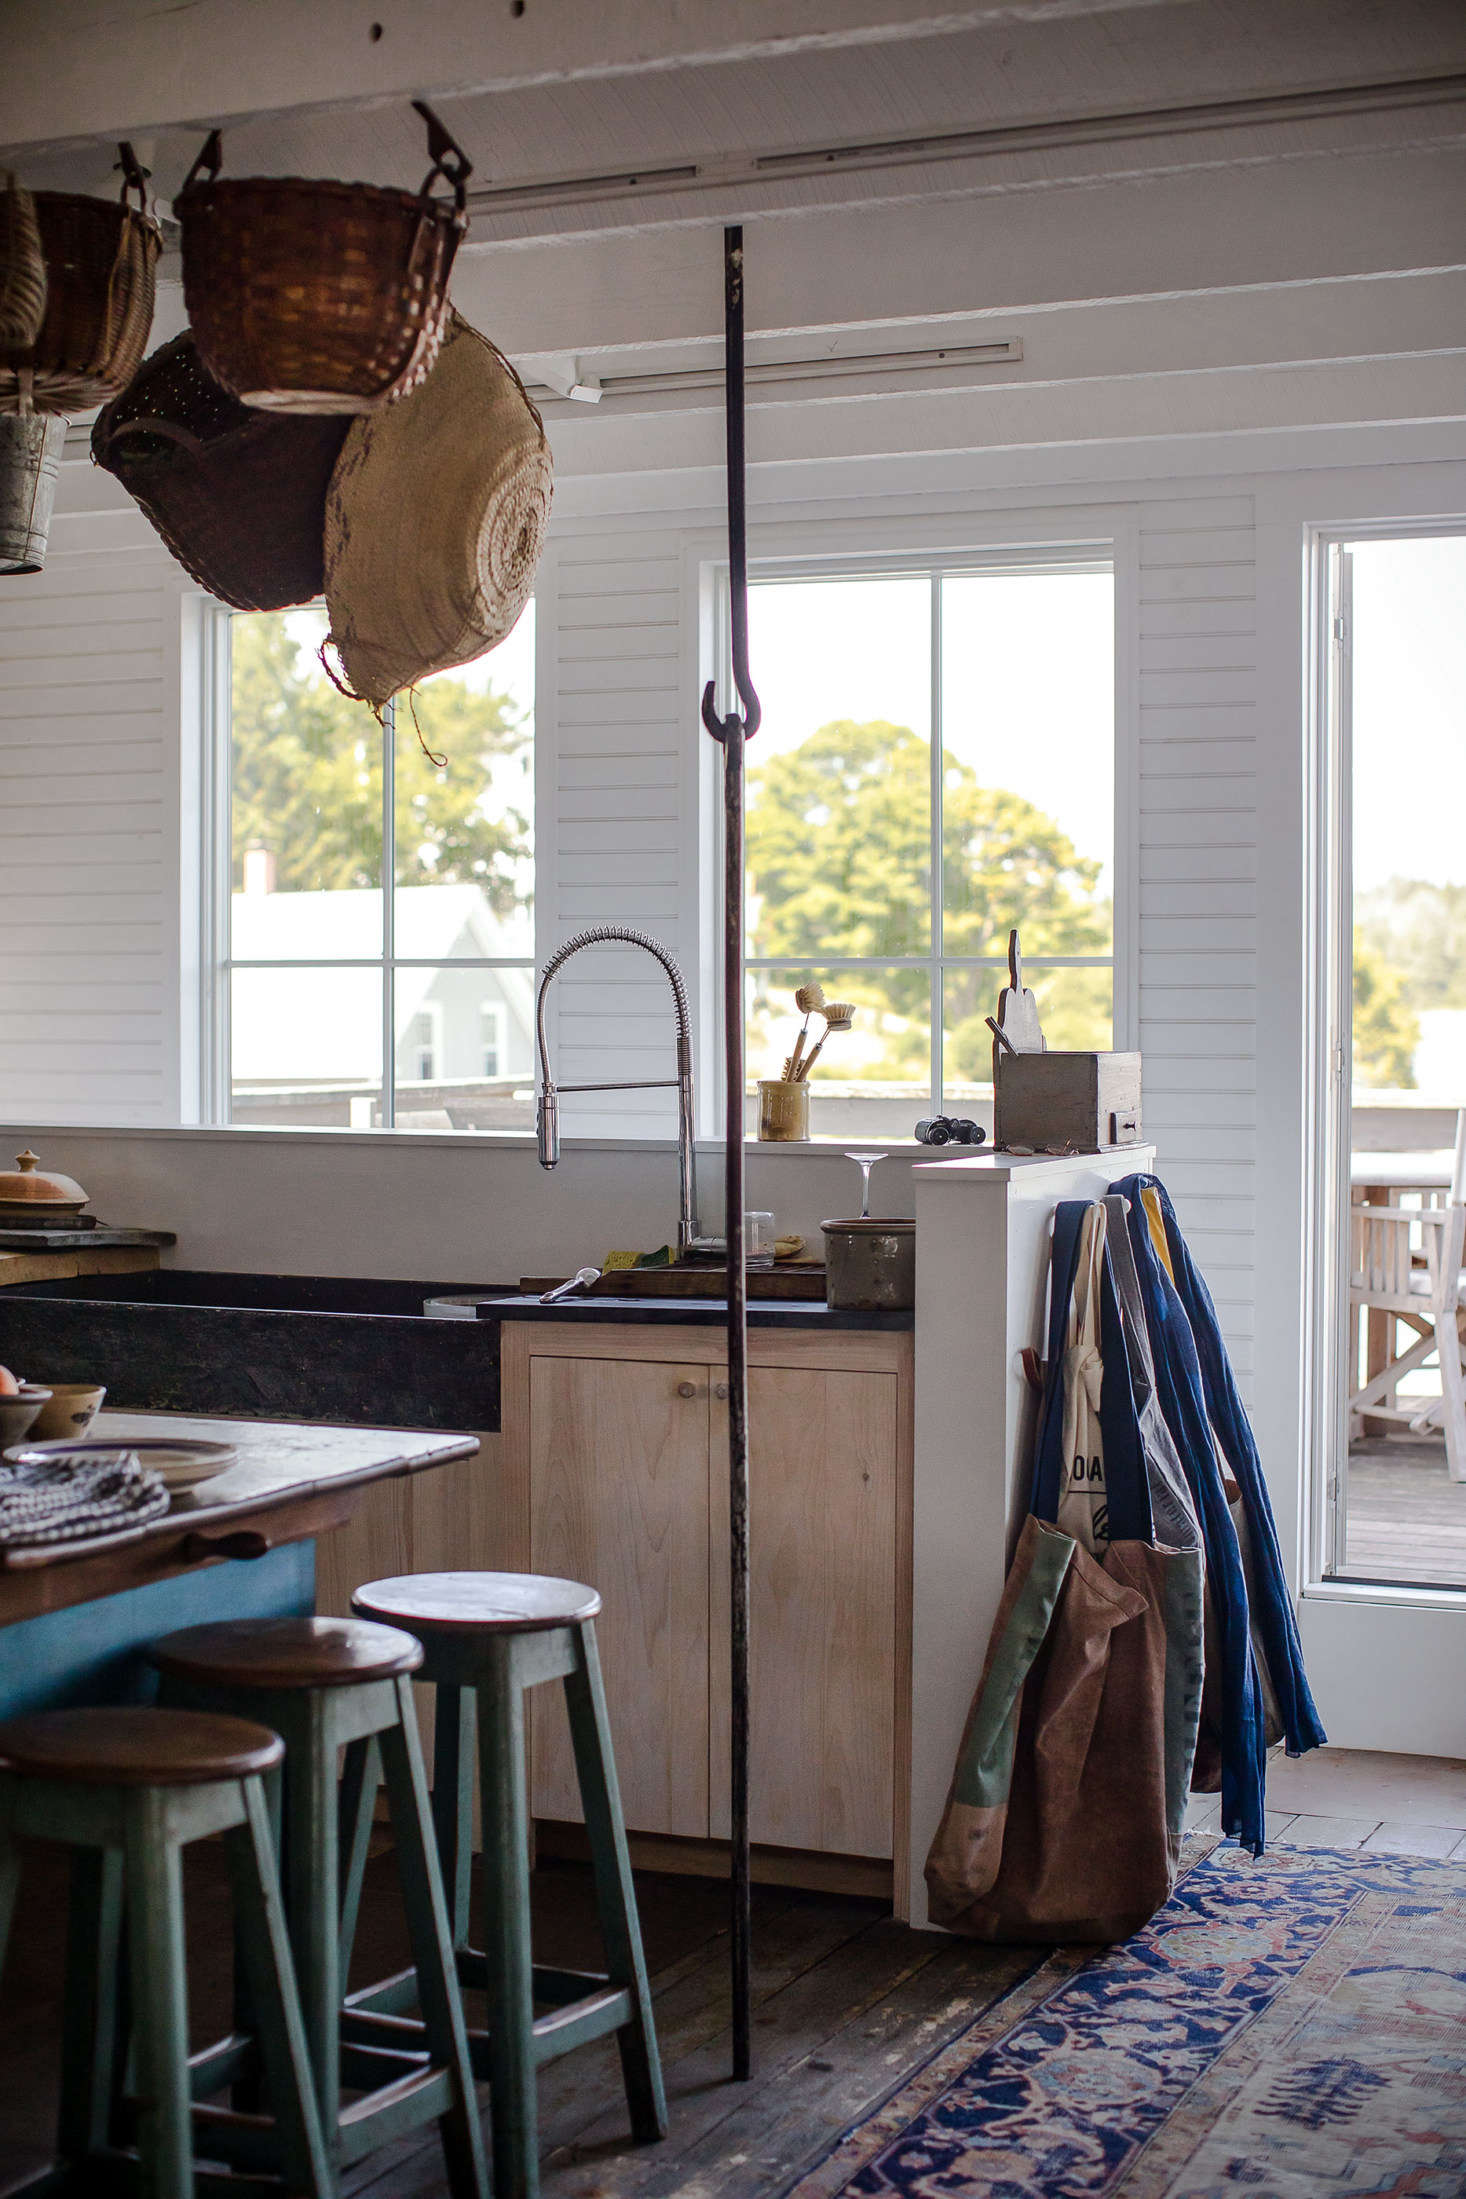 A wonderful historic detail: iron support hooks enhance the rustic feel.